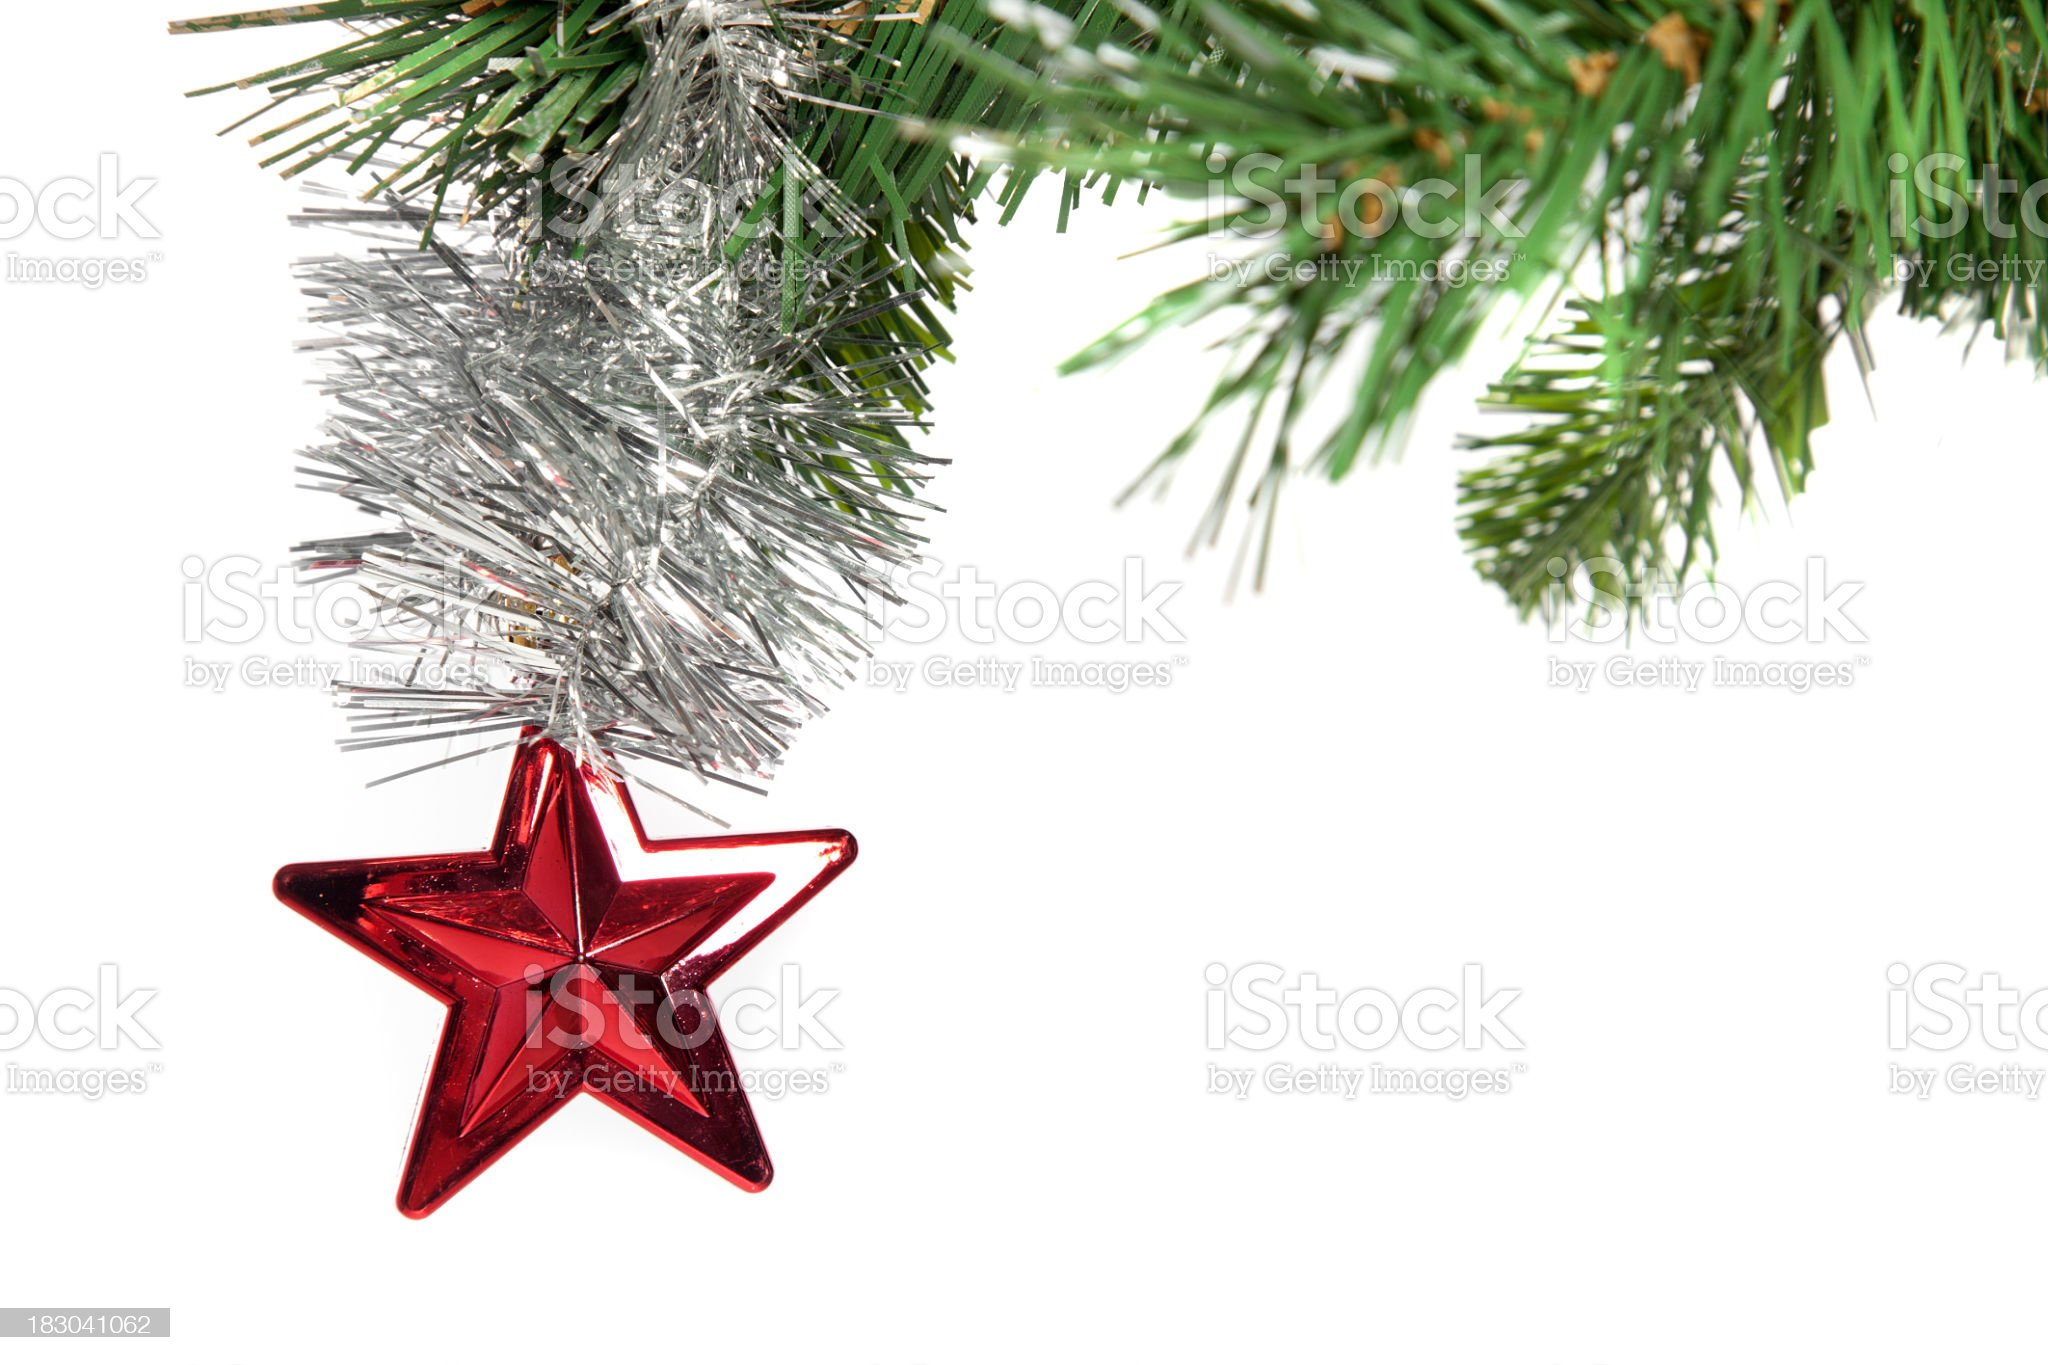 Christmas decoration series royalty-free stock photo